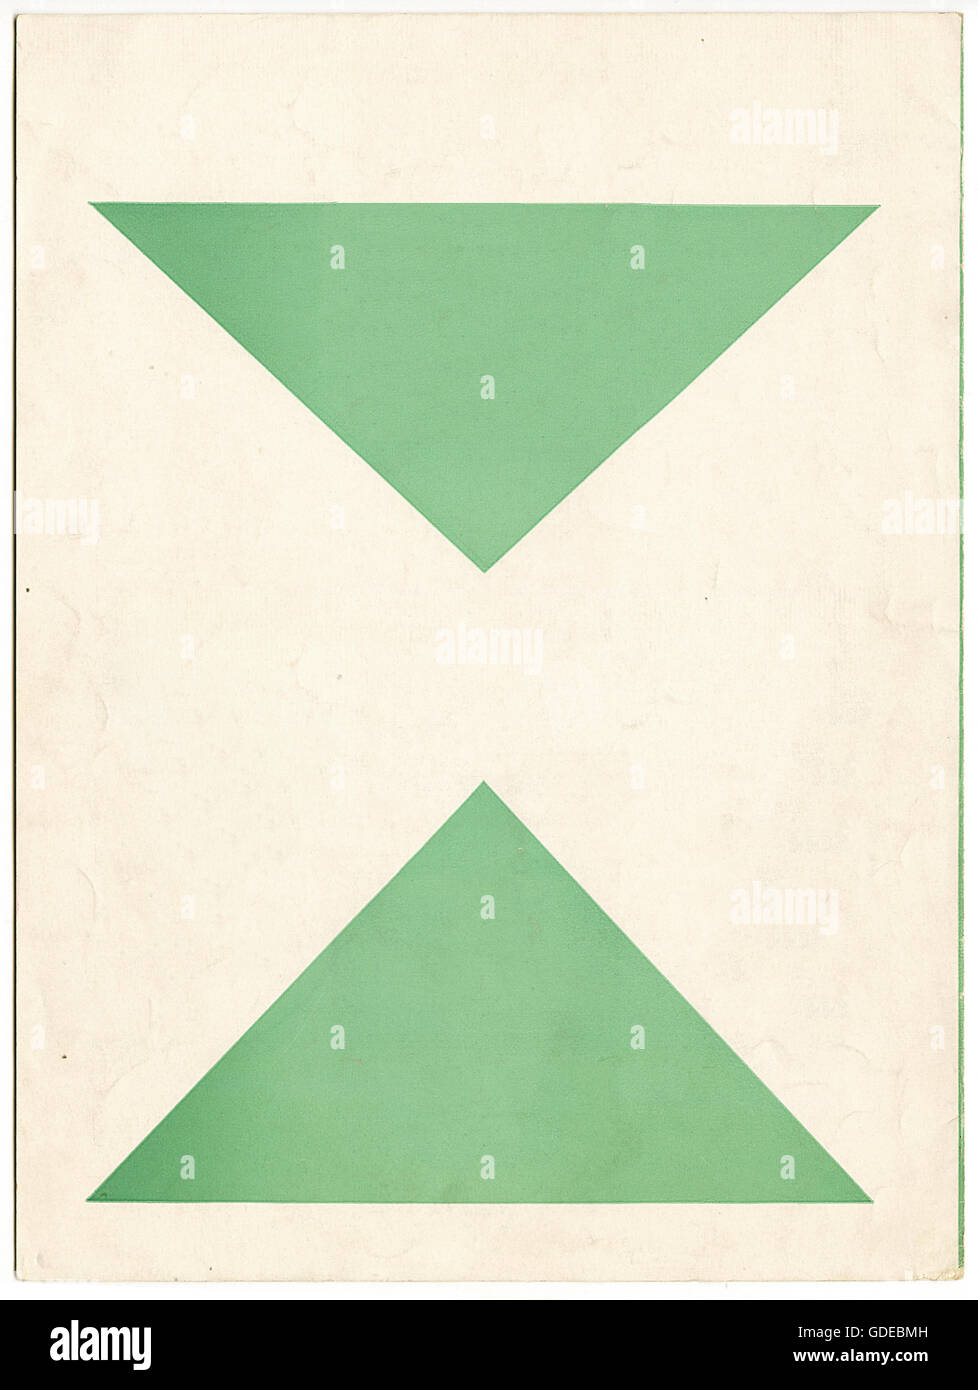 Vintage paper with printed green triangles - Stock Image